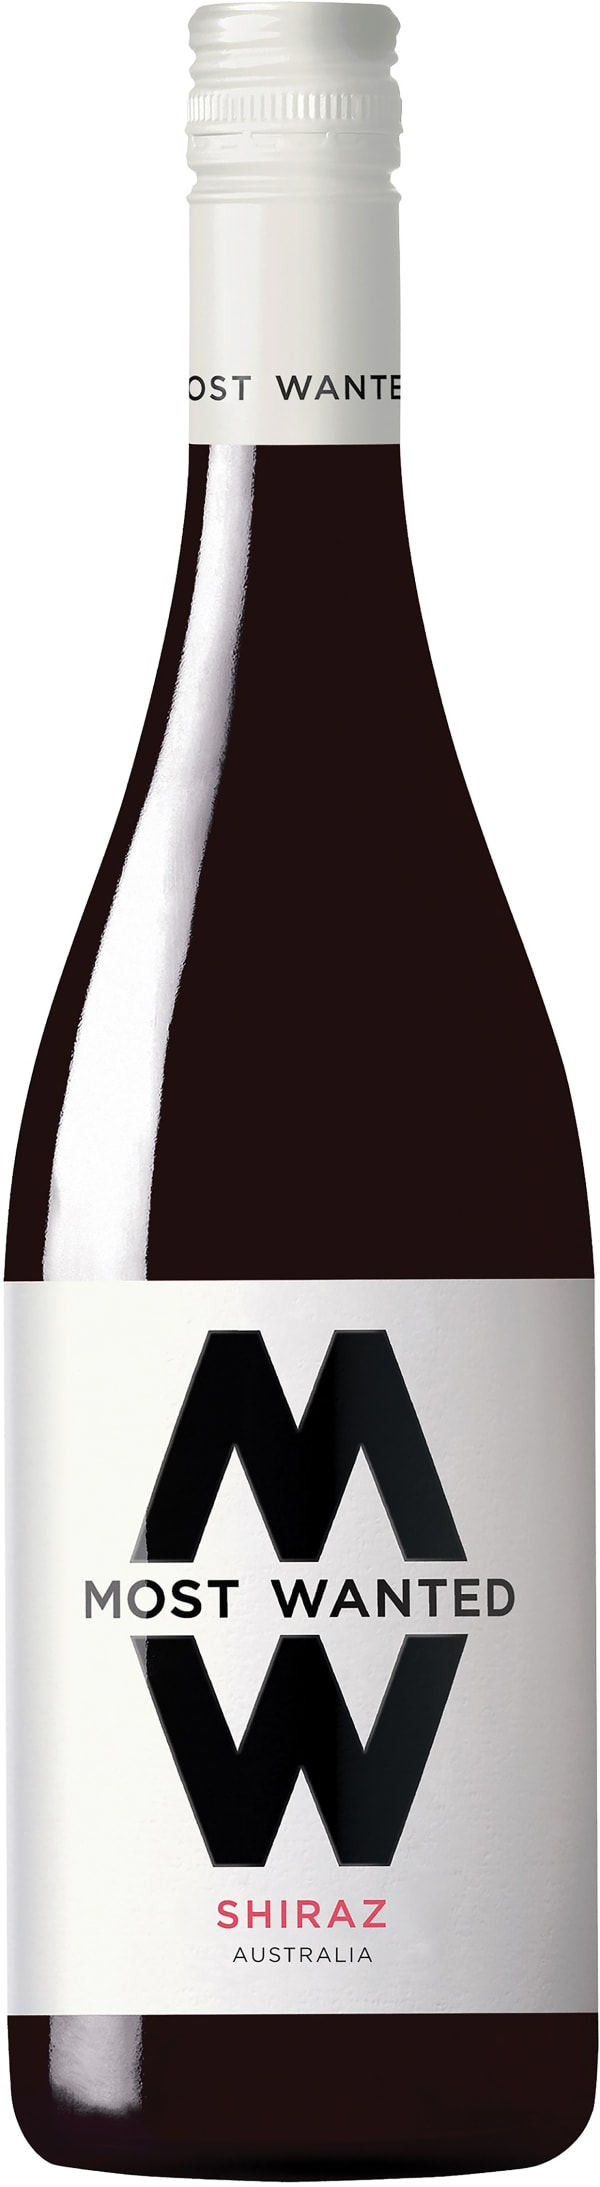 Most Wanted Shiraz 2016